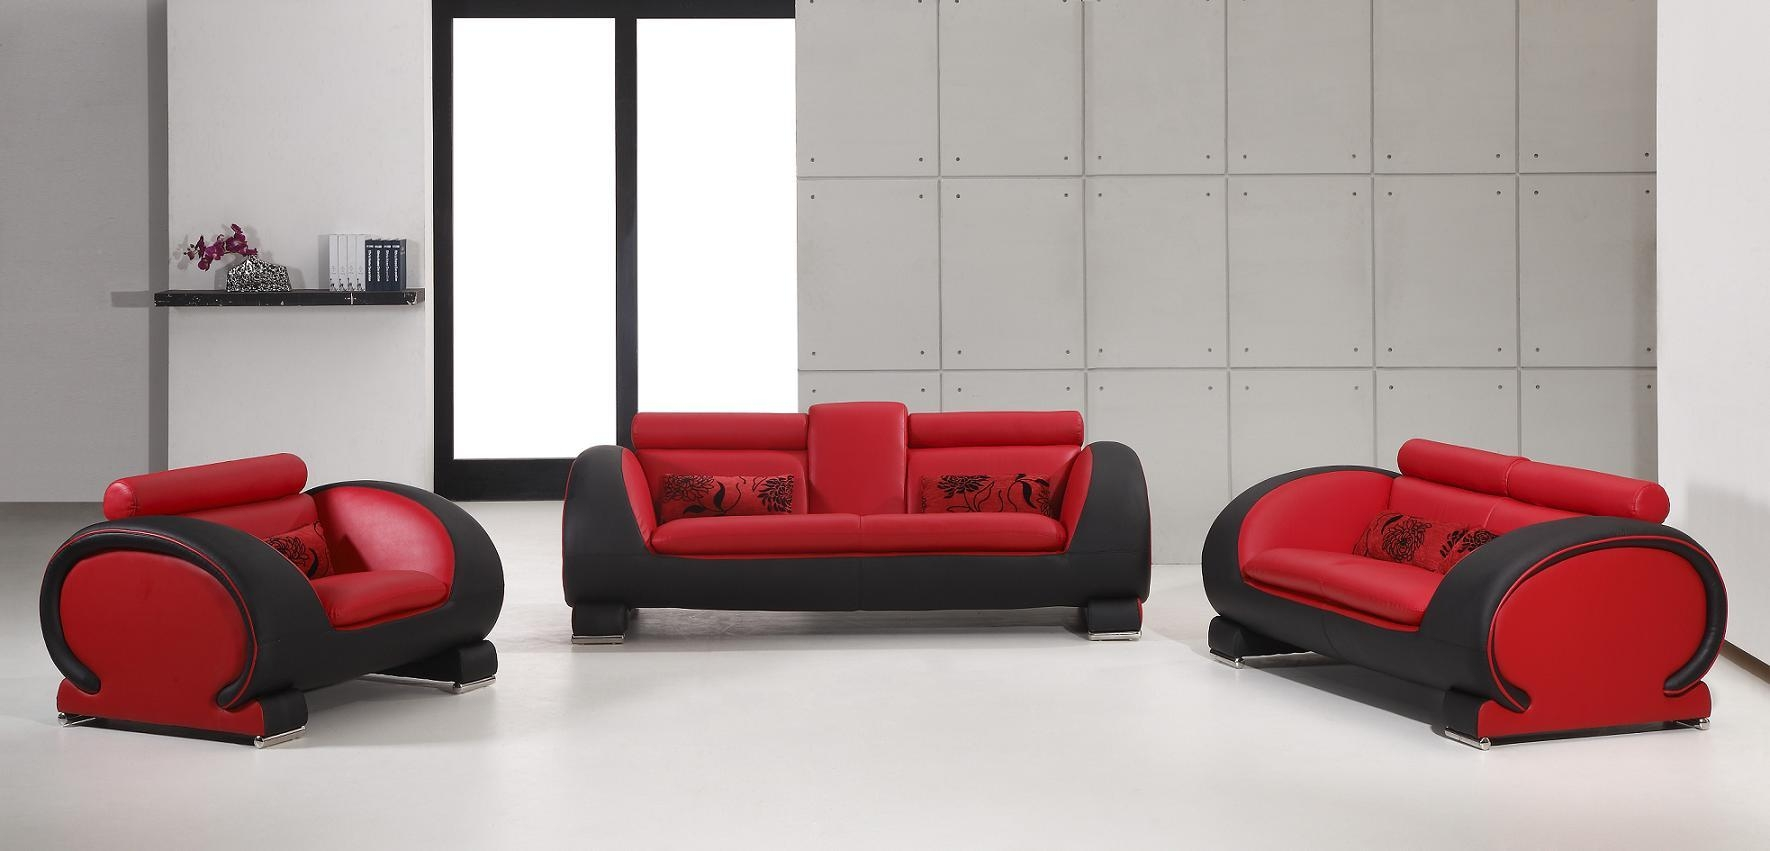 Furniture Astonishing Living Room Couch Sets Design Ideas Intended For Cool Small Sofas (#7 of 12)